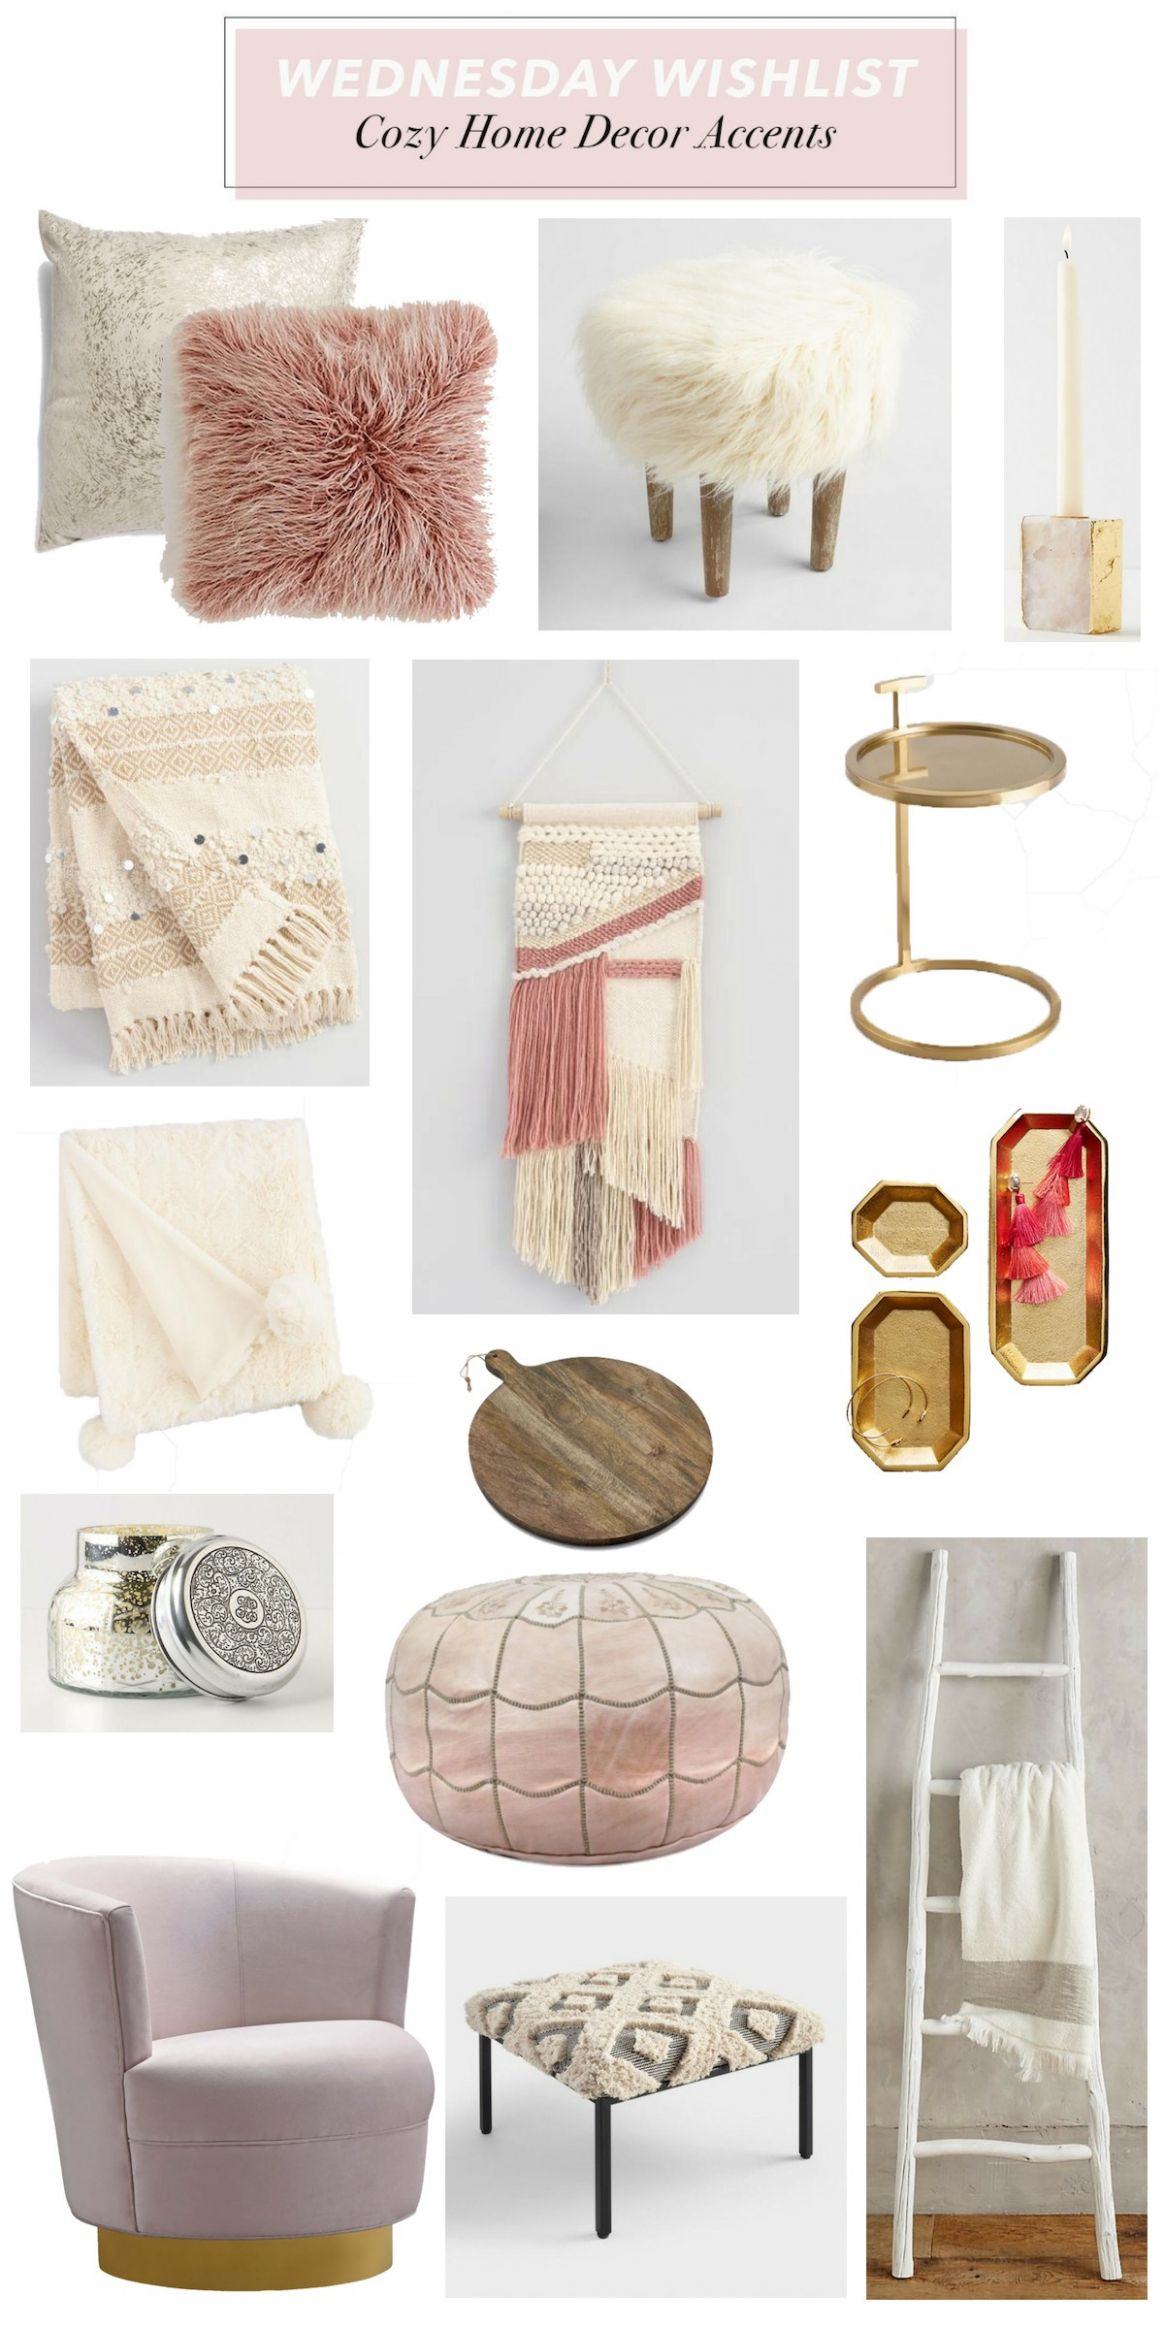 10 Cozy Home Decor Accents to Get Your House Feeling Like Fall - home decor accents